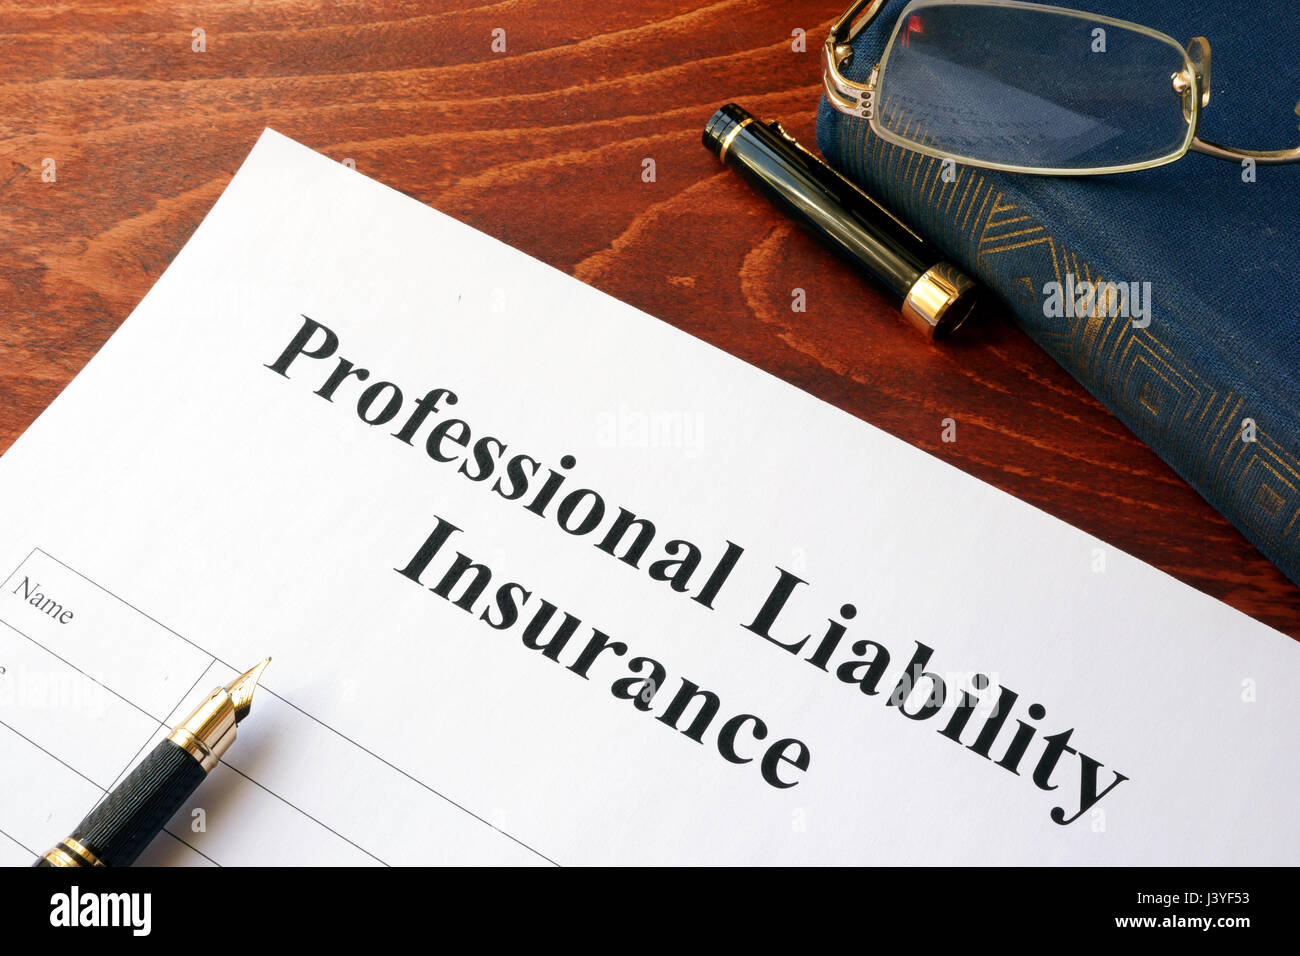 Professional liability insurance policy on a table. - Stock Image